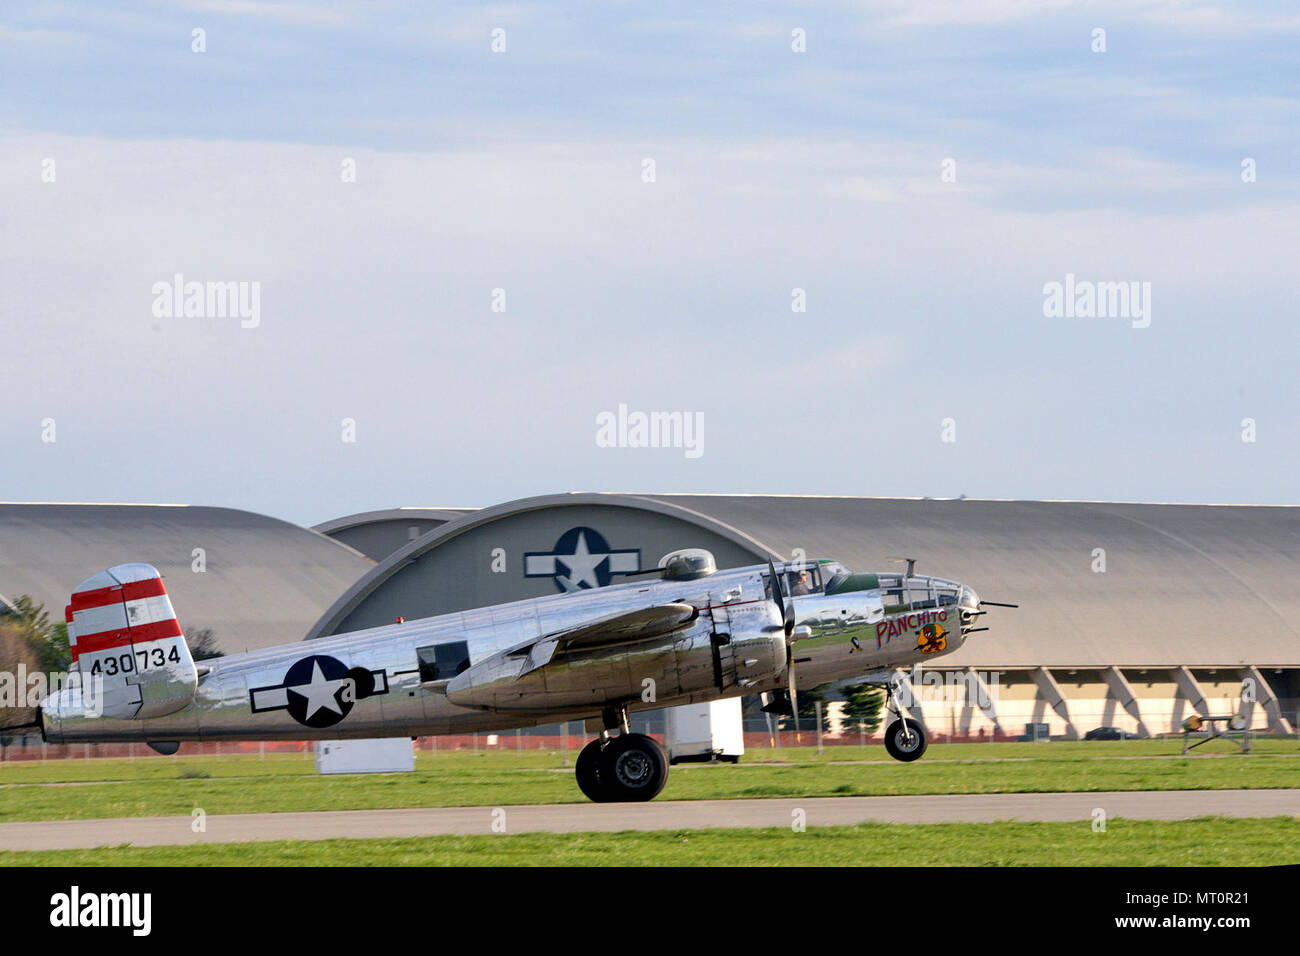 united states army air force light bomber ww2